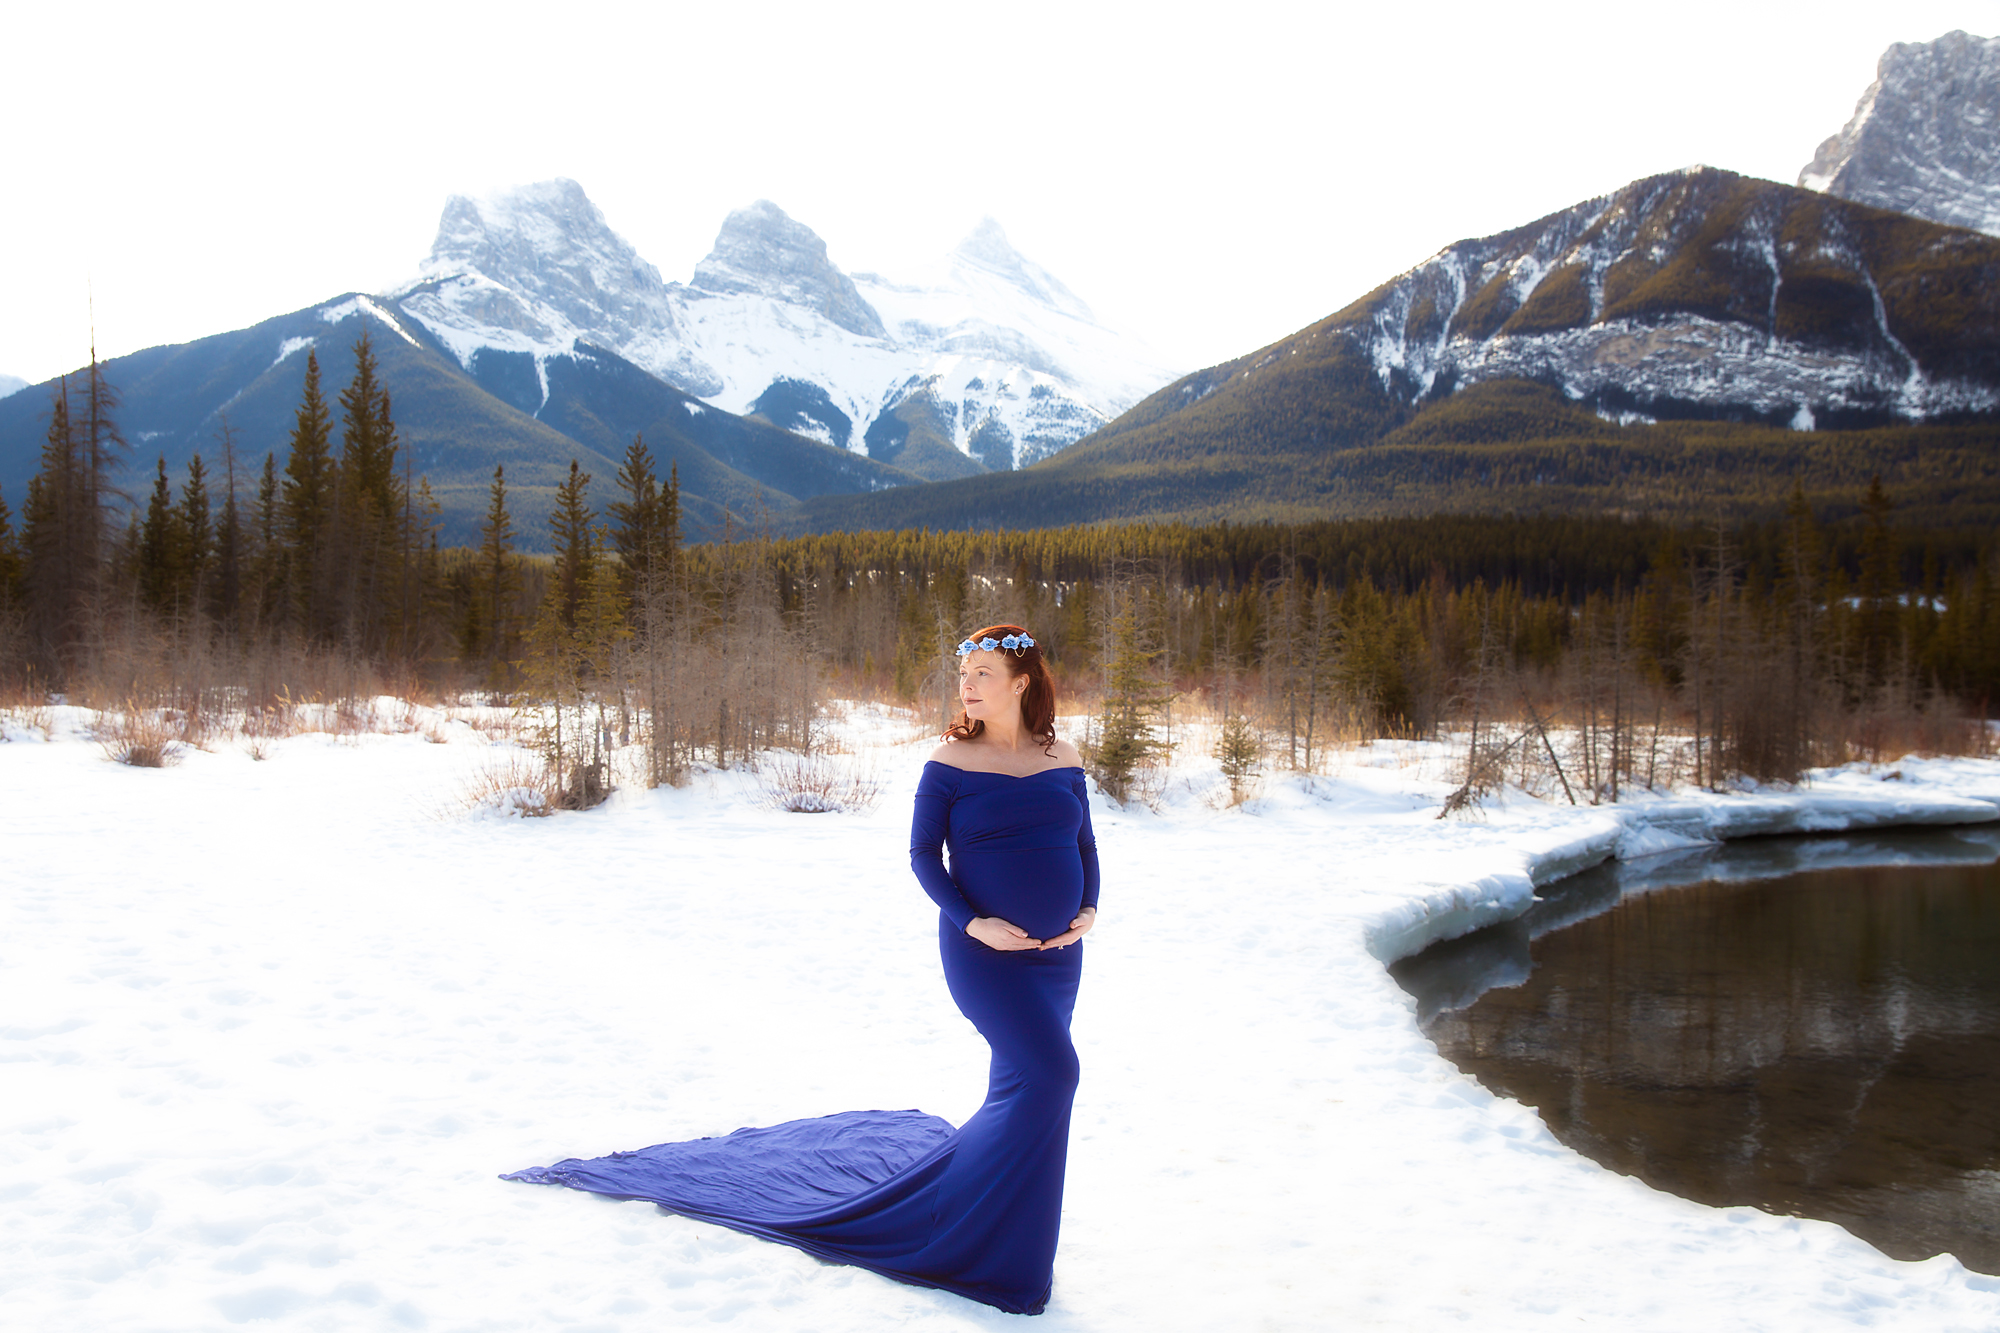 Beautiful mother-to-be in a gorgeous royal blue gown standing in front of The Three Sister mountains in Canmore, Alberta, Canada during winter. Calgary, Airdrie, Canmore, Banff and Kananaskis Maternity Photographer - Milashka photography